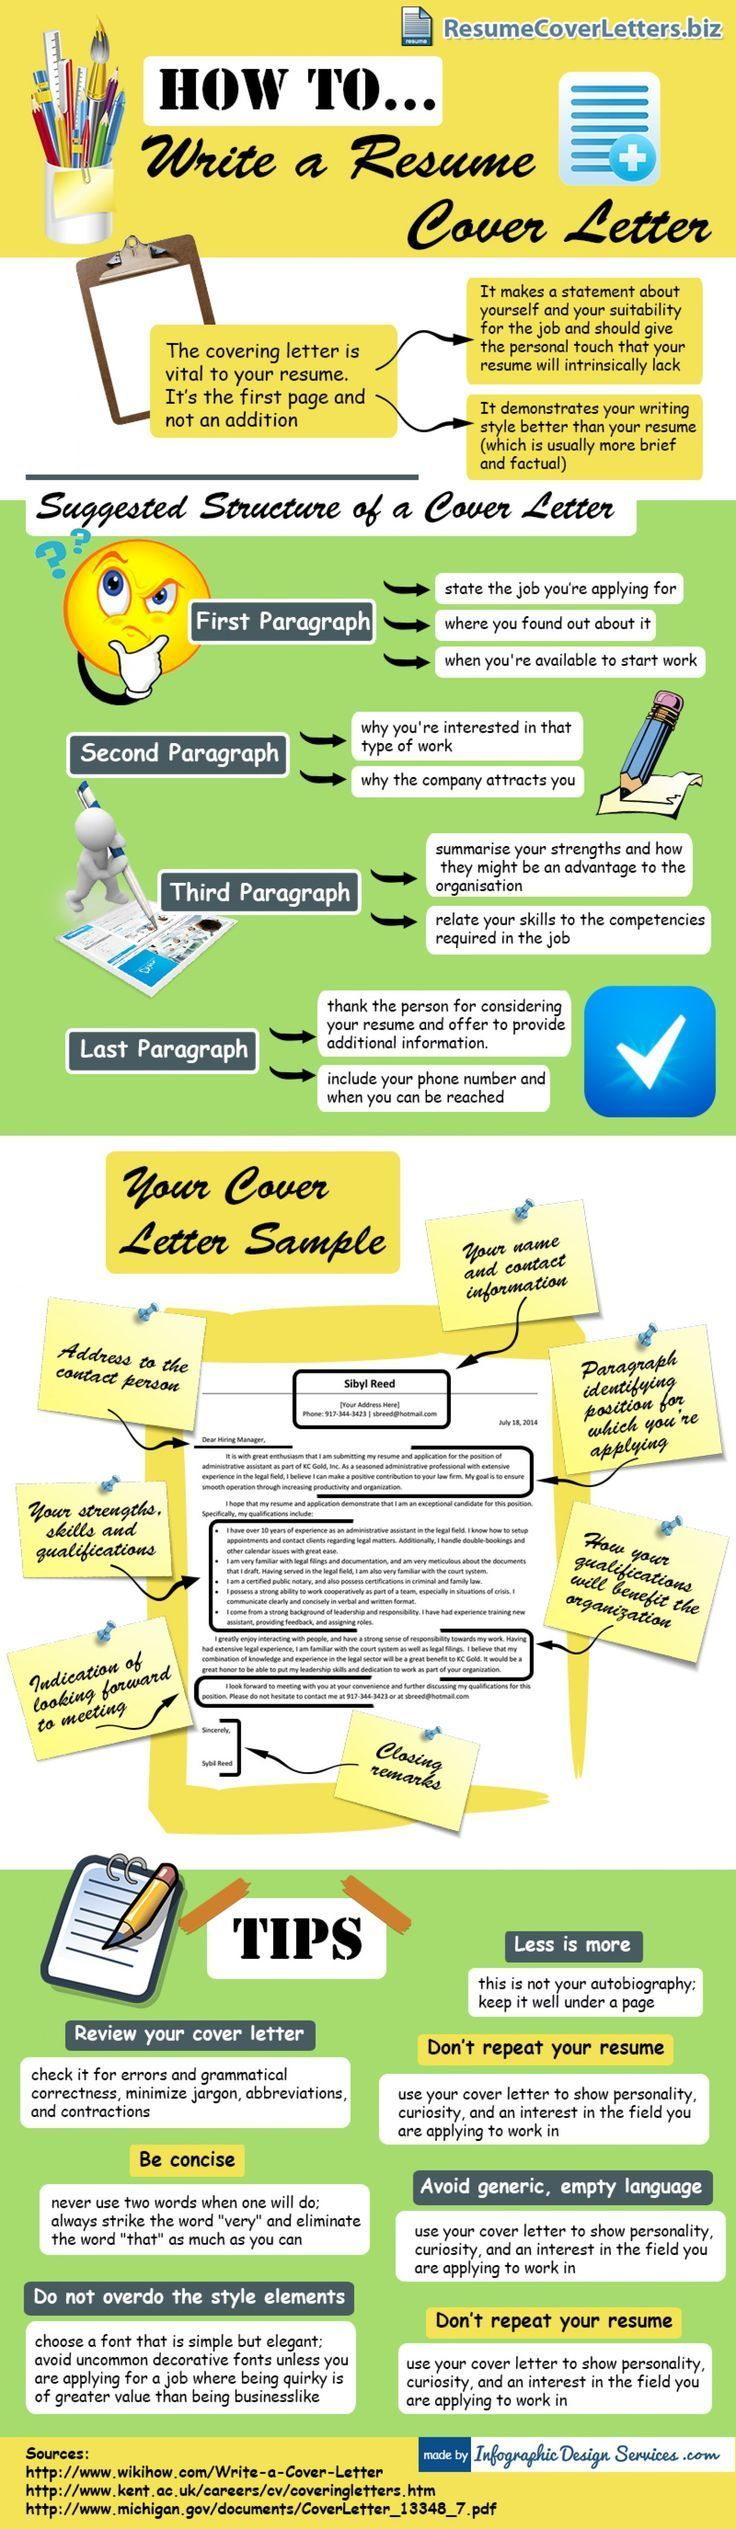 How To Do Resume Cover Letter 13 Best Tricks Of The Trade Images On Pinterest  Great Ideas .